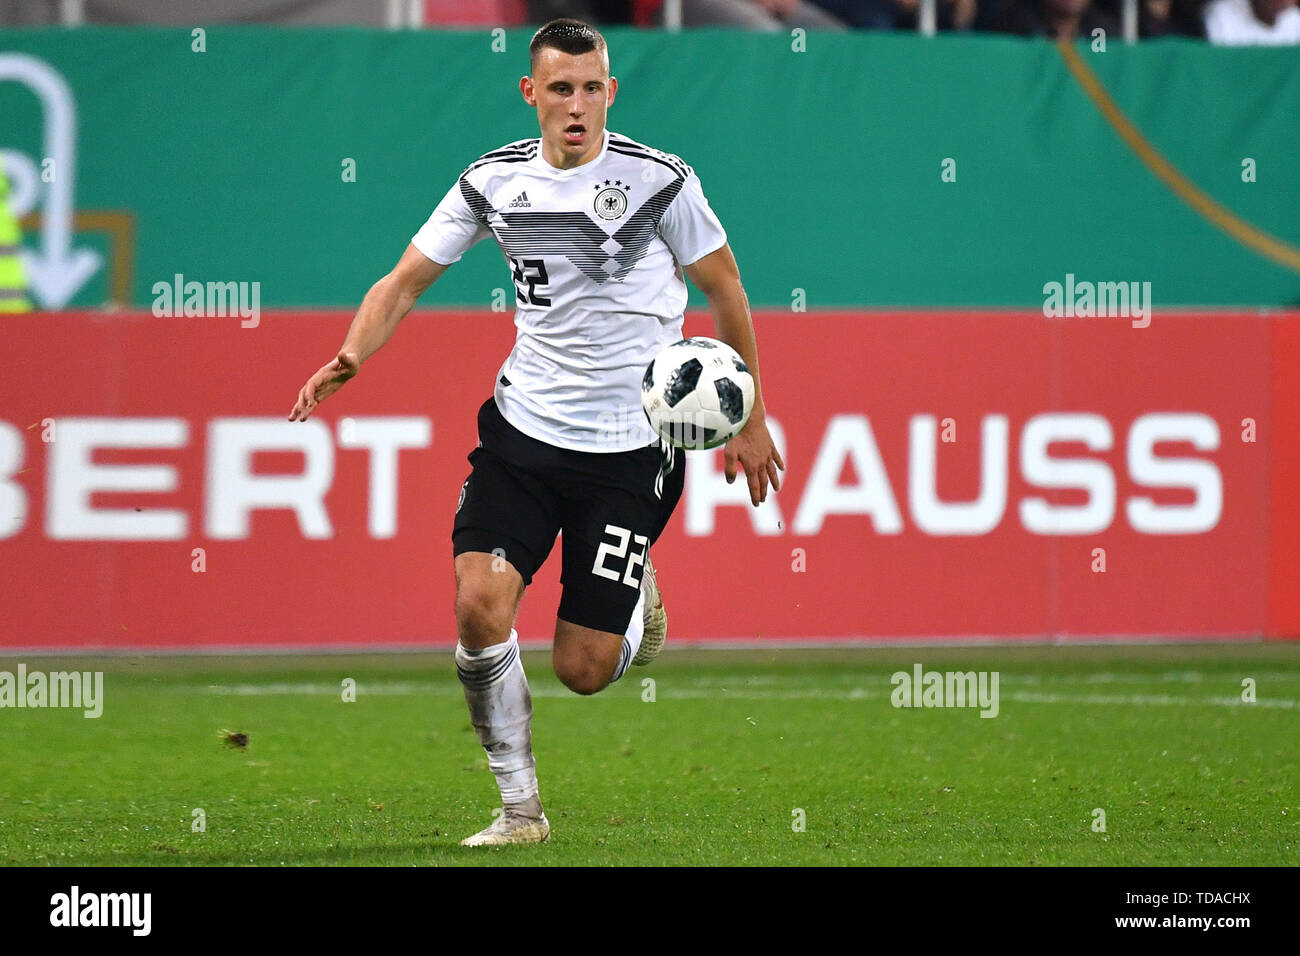 Preview UEFA Under21 European Championship in Italy / SanMarino from 16.-30.06.2019. Archive photo: Maximilian EGGESTEIN (GER), action, individual action, single image, cut out, full body shot, full figure. Soccer U-21 Laenderspiel.EM Qualification, Germany (GER) - Norway (NOR) 2-1, on 12.10.2018 in Ingolstadt / AUDI SPORTPARK. DFB REGULATIONS PROHIBIT ANY USE OF PHOTOGRAPH AS IMAGE SEQUENCES AND / OR QUASI VIDEO. | Usage worldwide Stock Photo